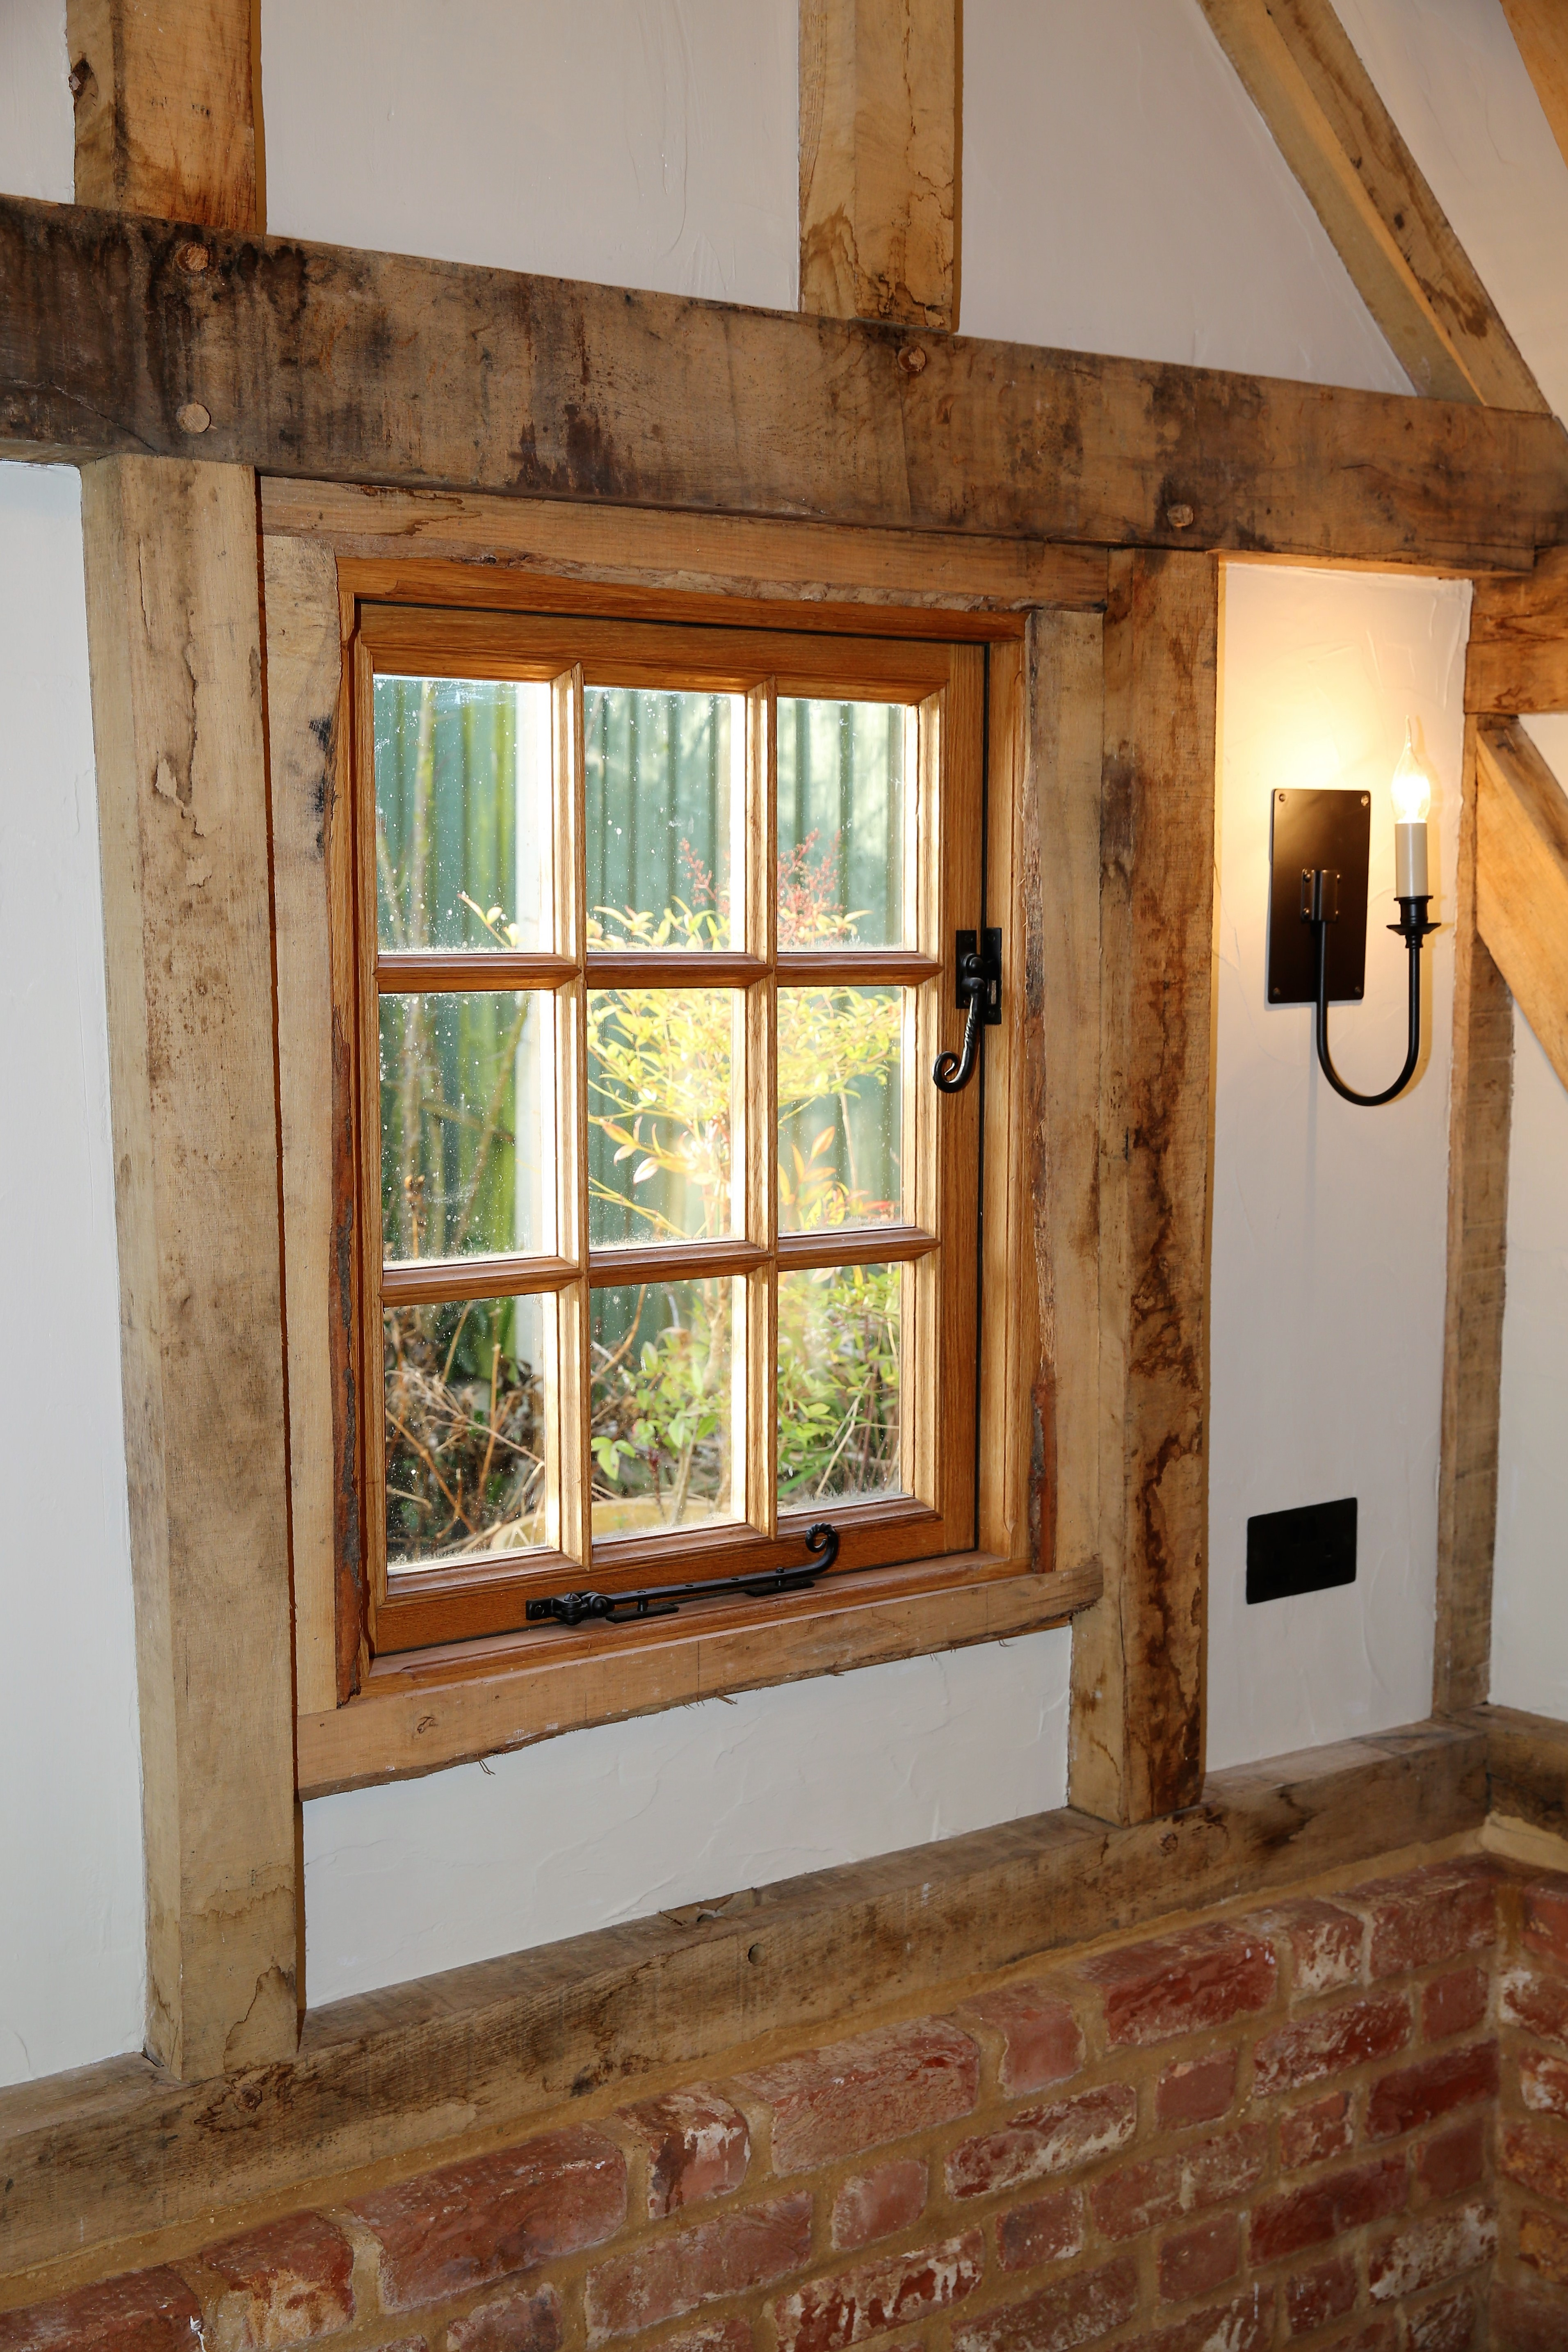 Precision Made Joinery based in Sudbury Suffolk provide Bespoke handmade furniture cabinets Windows & Window Joinery Sudbury Suffolk Hand Made - Precision Made